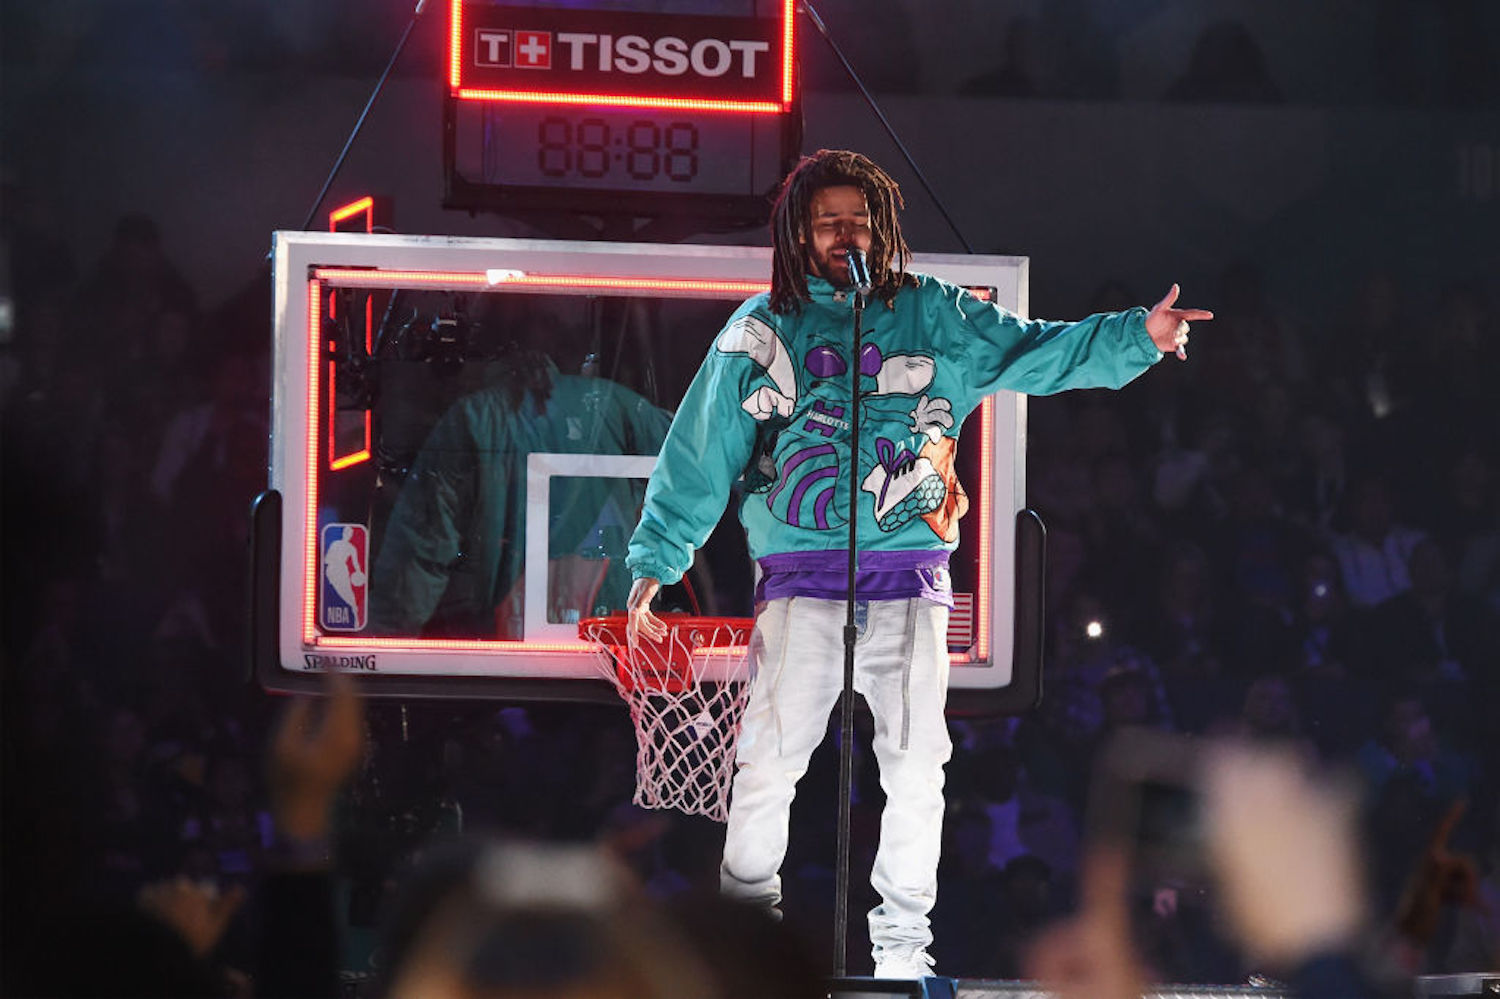 Rapper J. Cole has expressed interest in trying out for an NBA team, and the Detroit Pistons have taken him up on the offer.